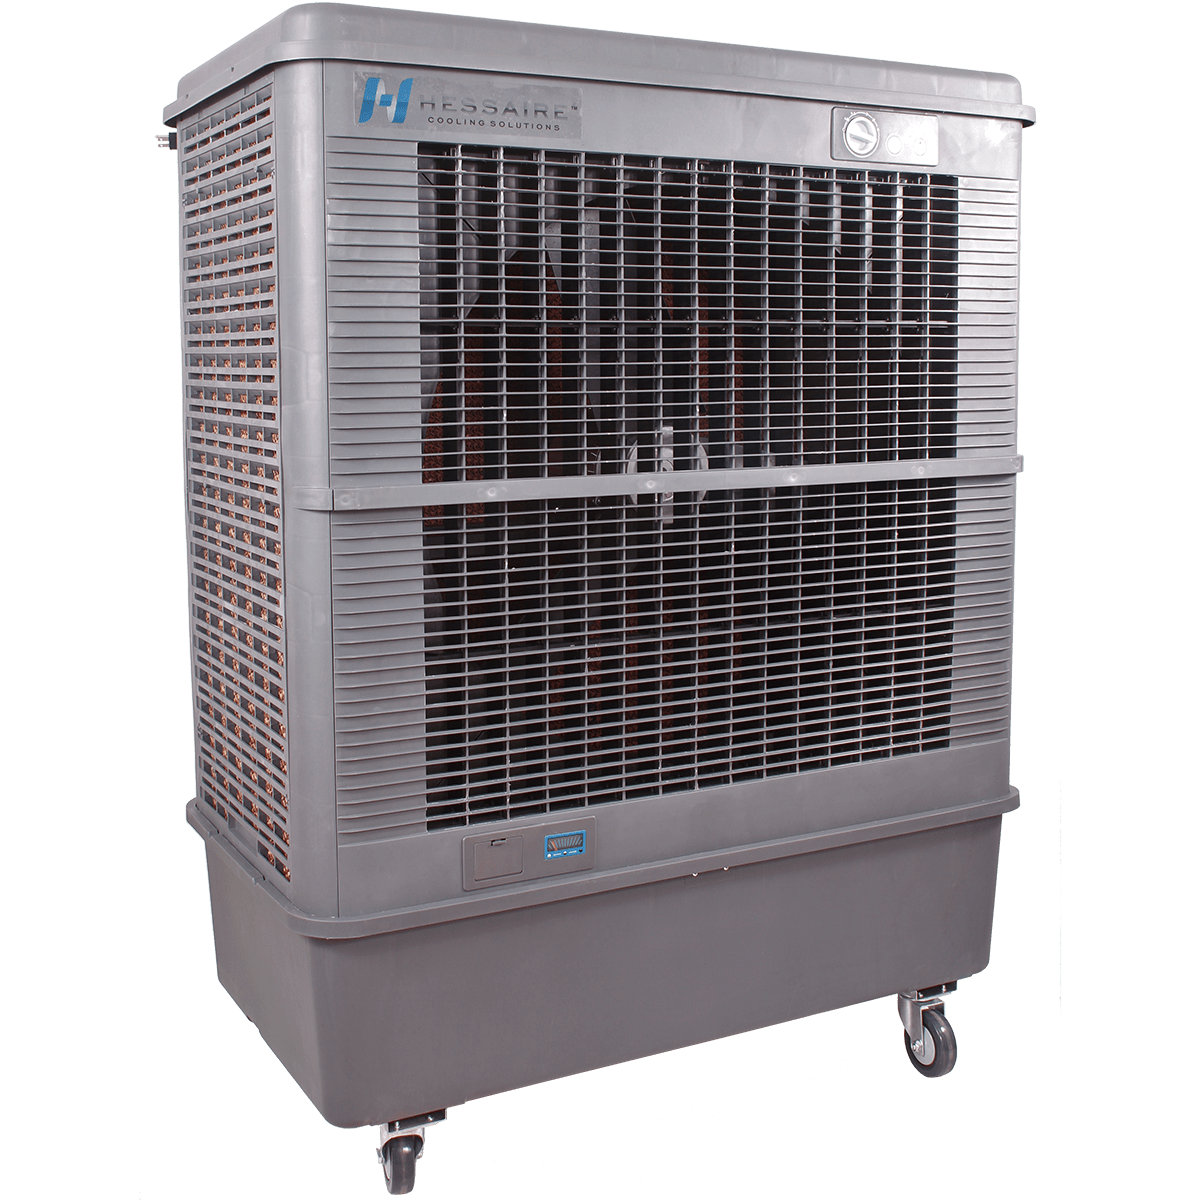 Hessaire MC91M 8,500 CFM 2-Speed Portable Evaporative Cooler he5455